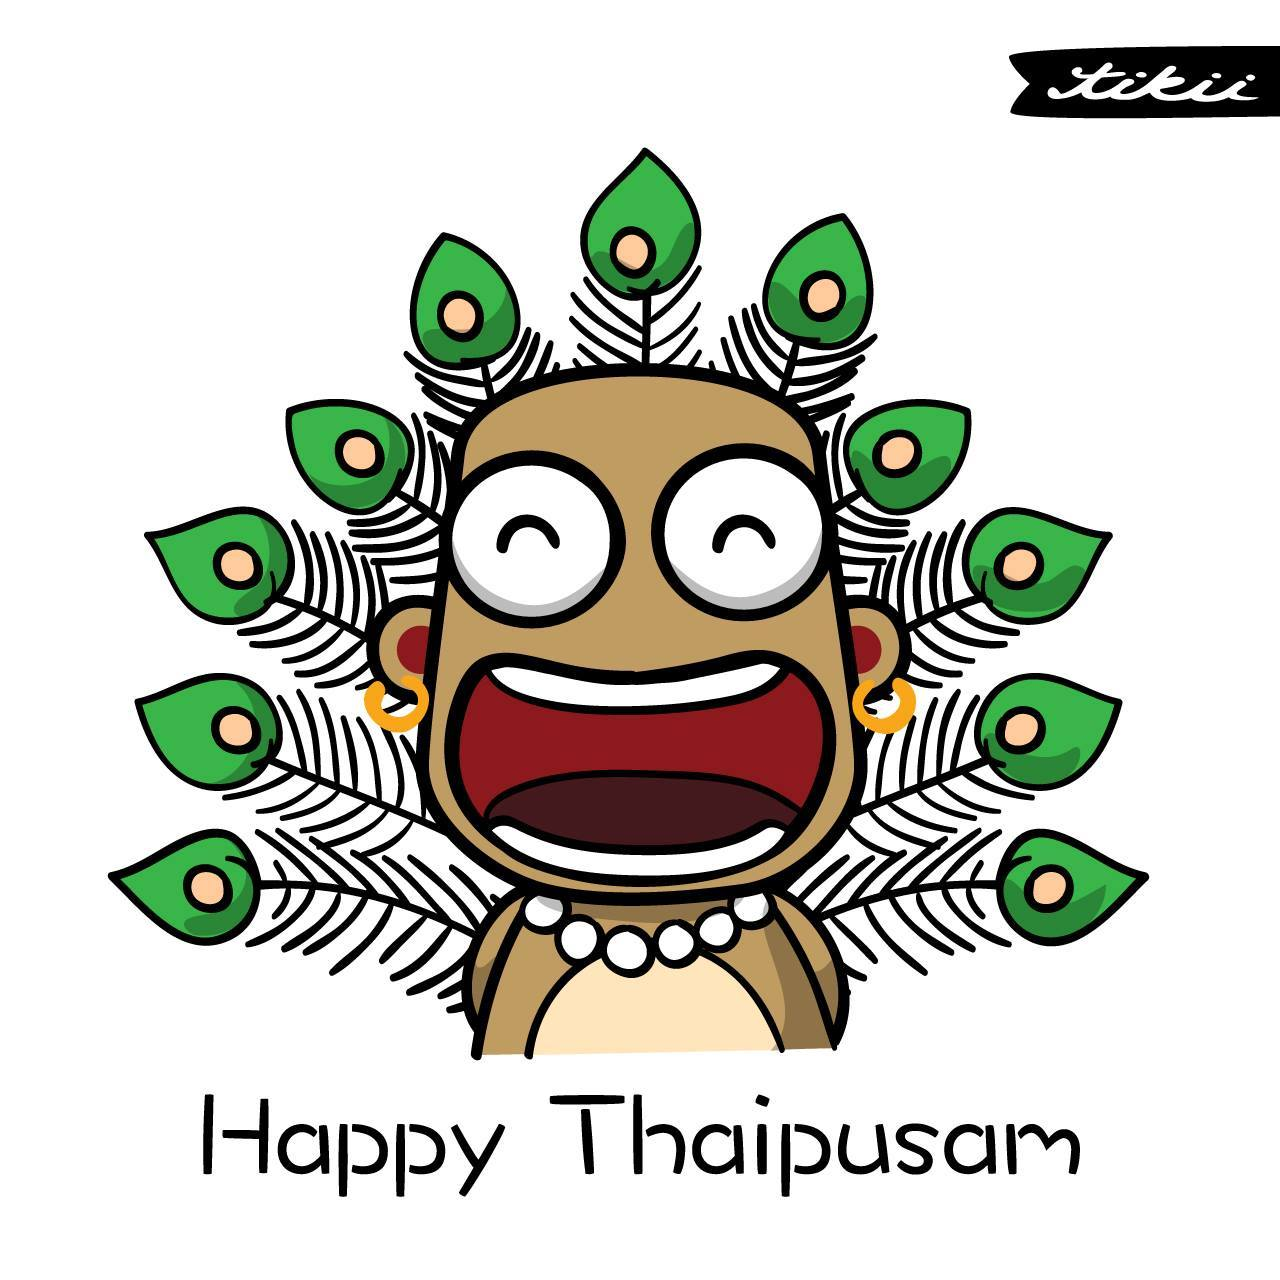 Amazing artworks of february. 2018 clipart thaipusam